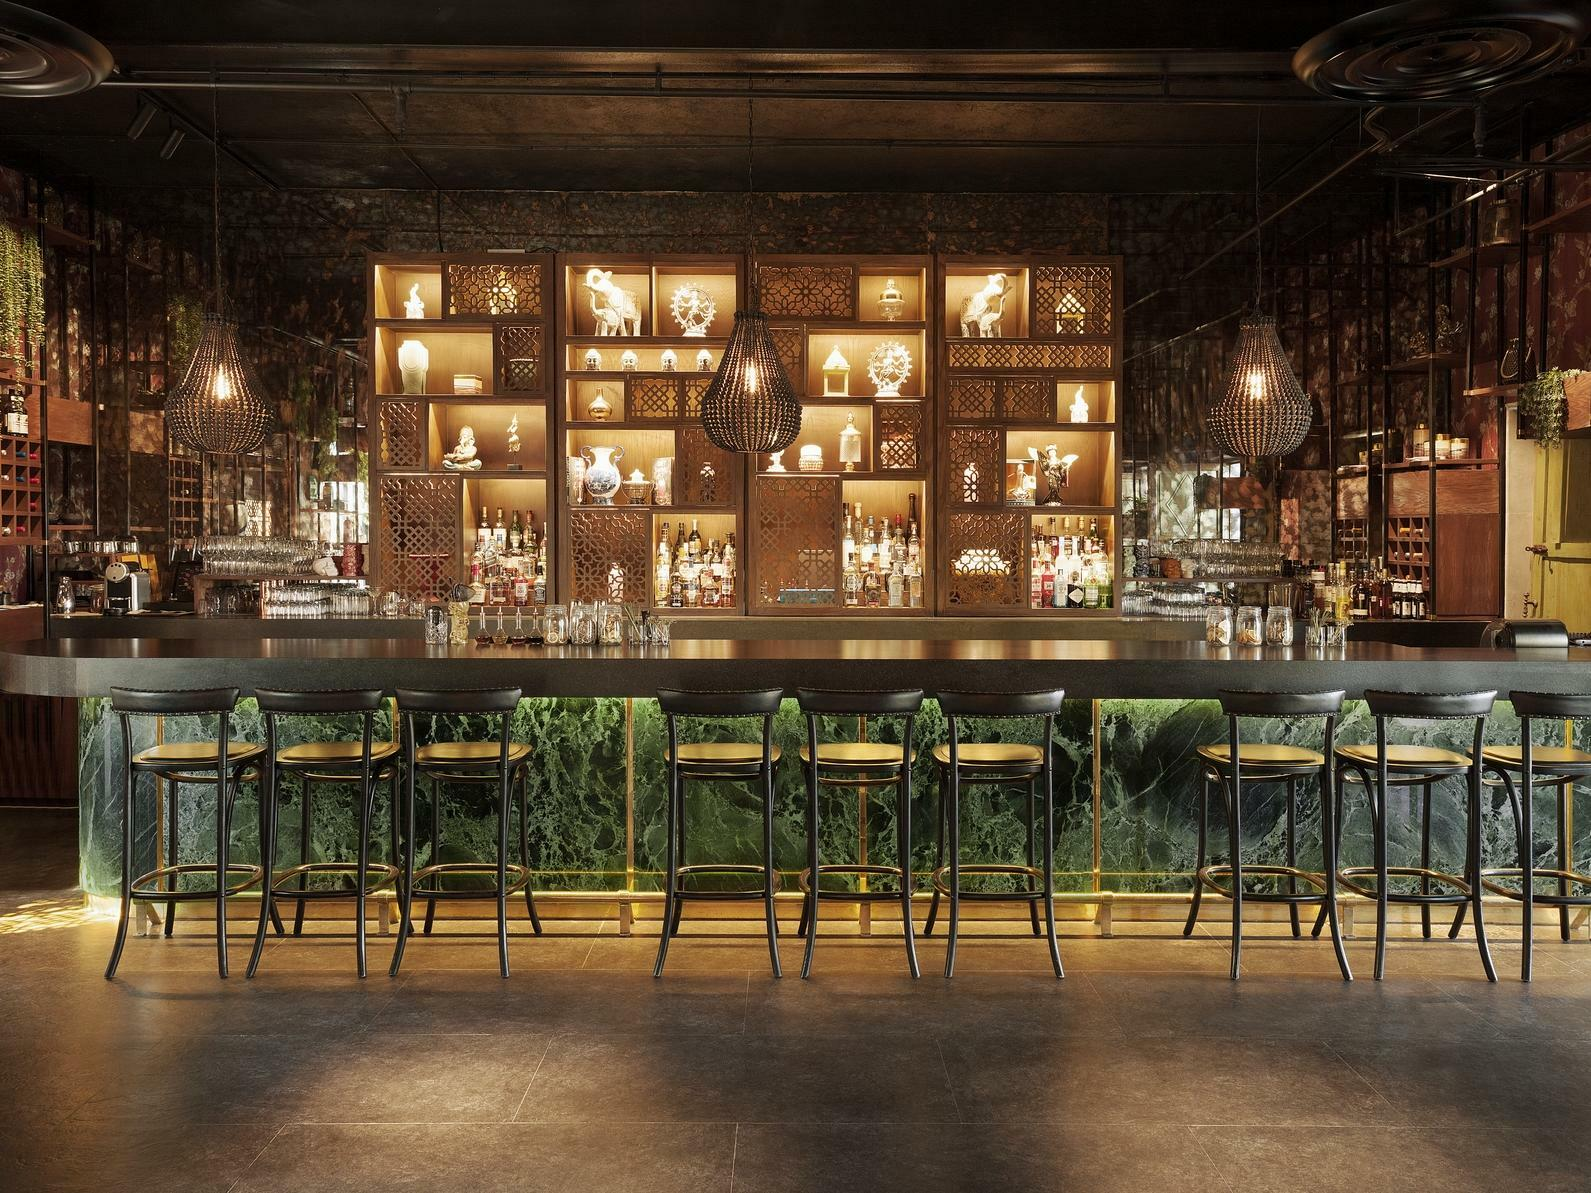 bar with bar stools and liqour bottles on shelves